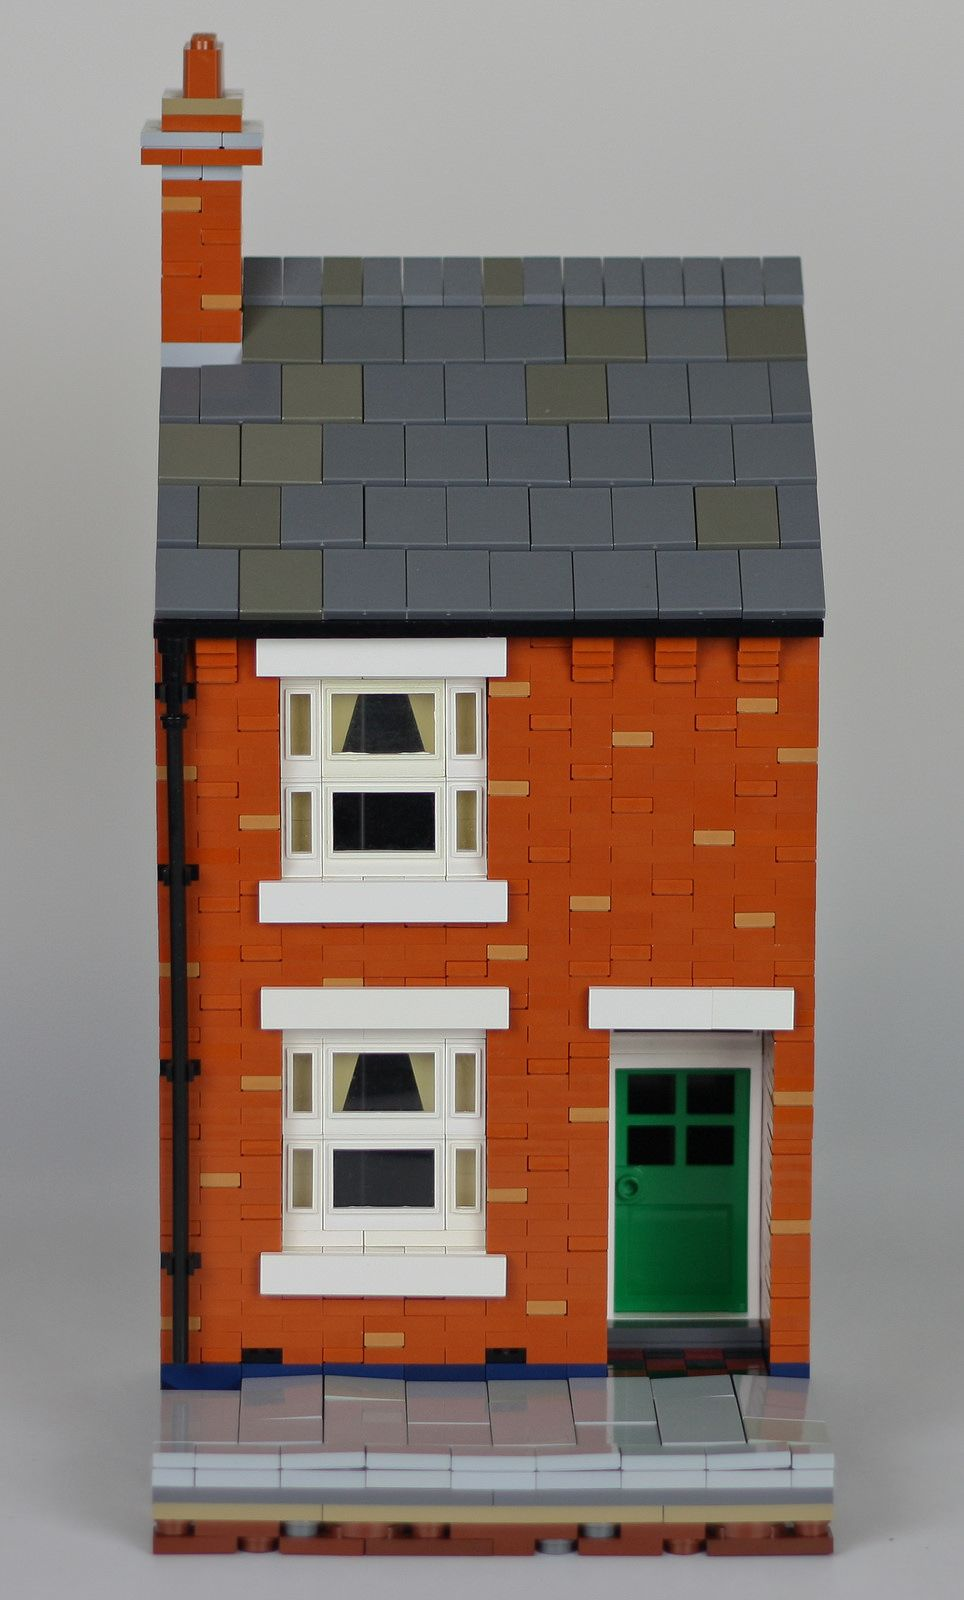 Lego British Victorian Terraced House | Lego Walls and Roofs